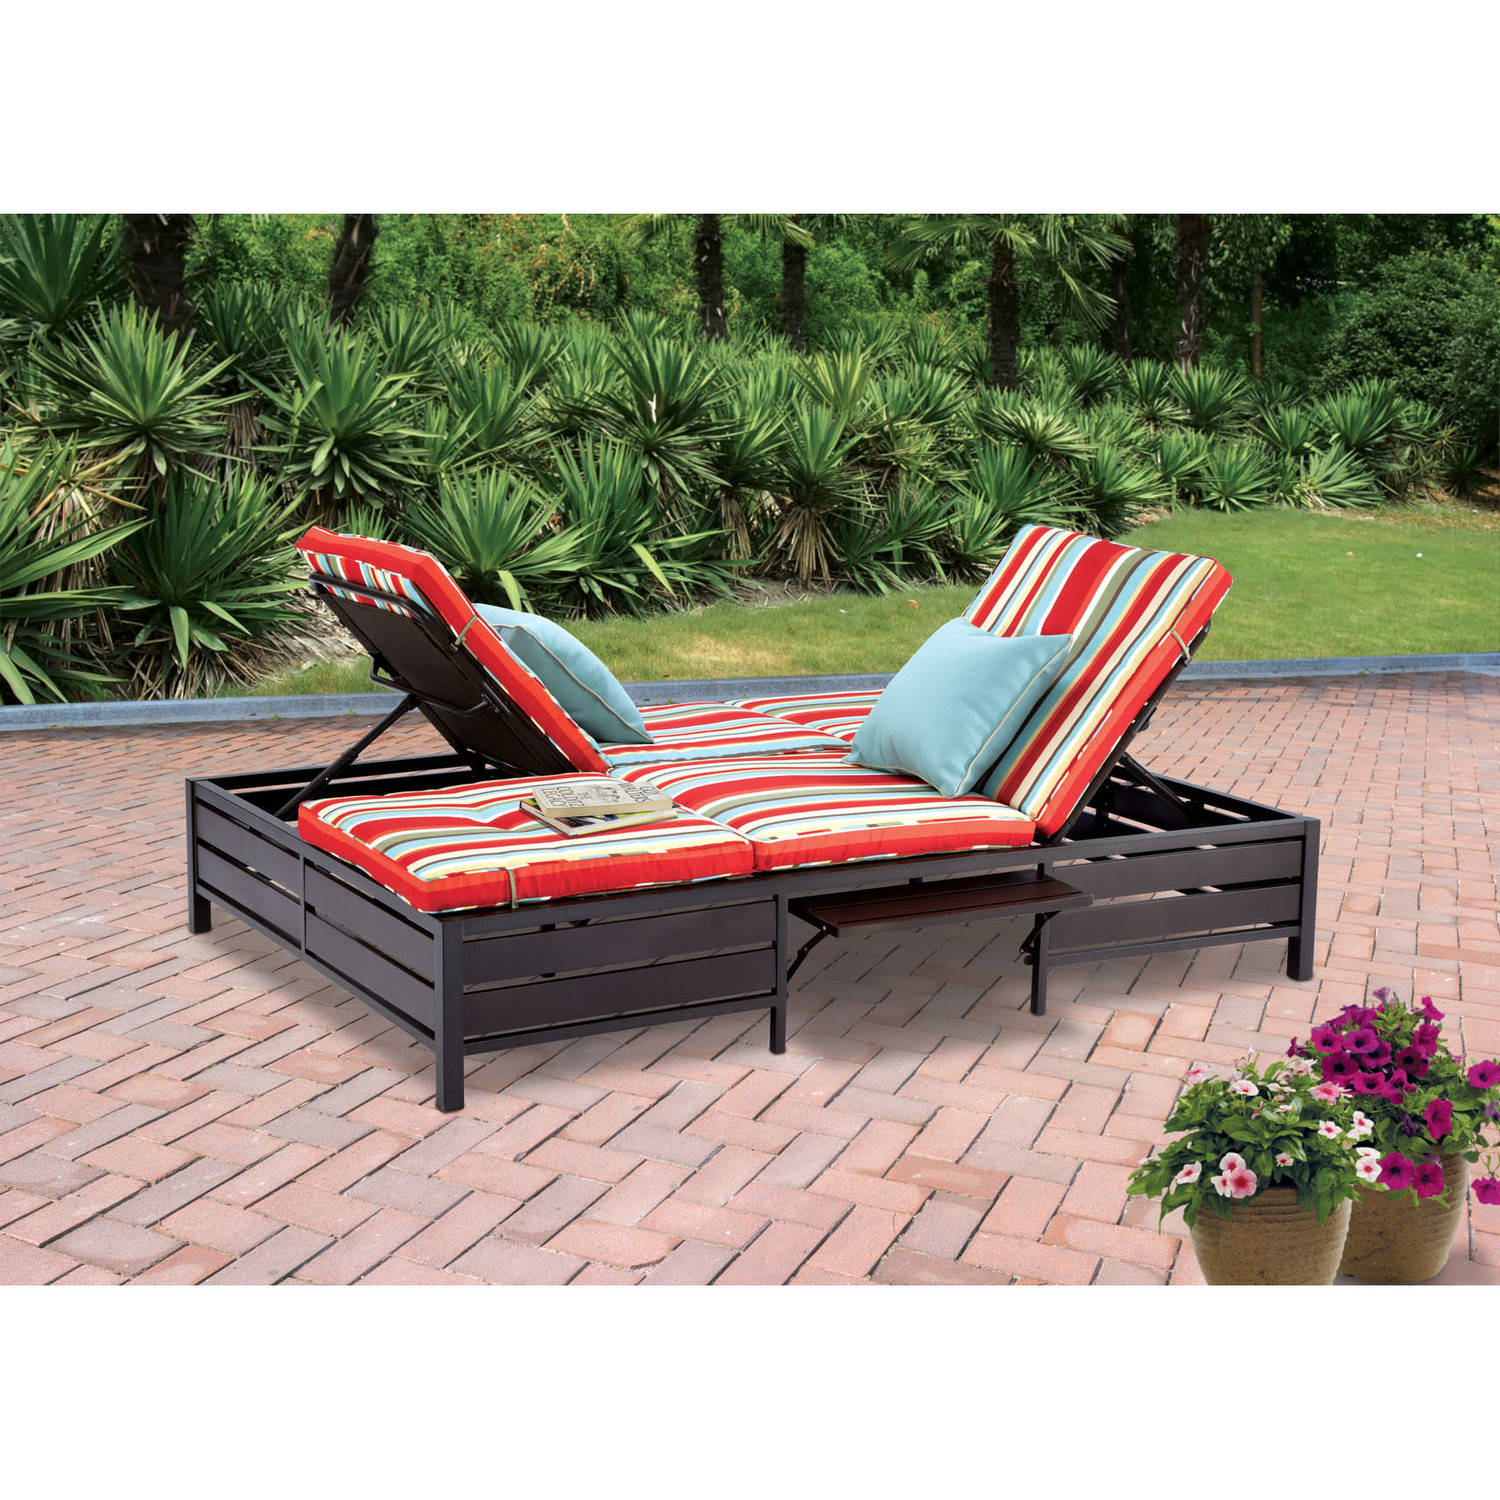 patio chaise lounge chairs walmart. patio chaise lounge chairs walmart